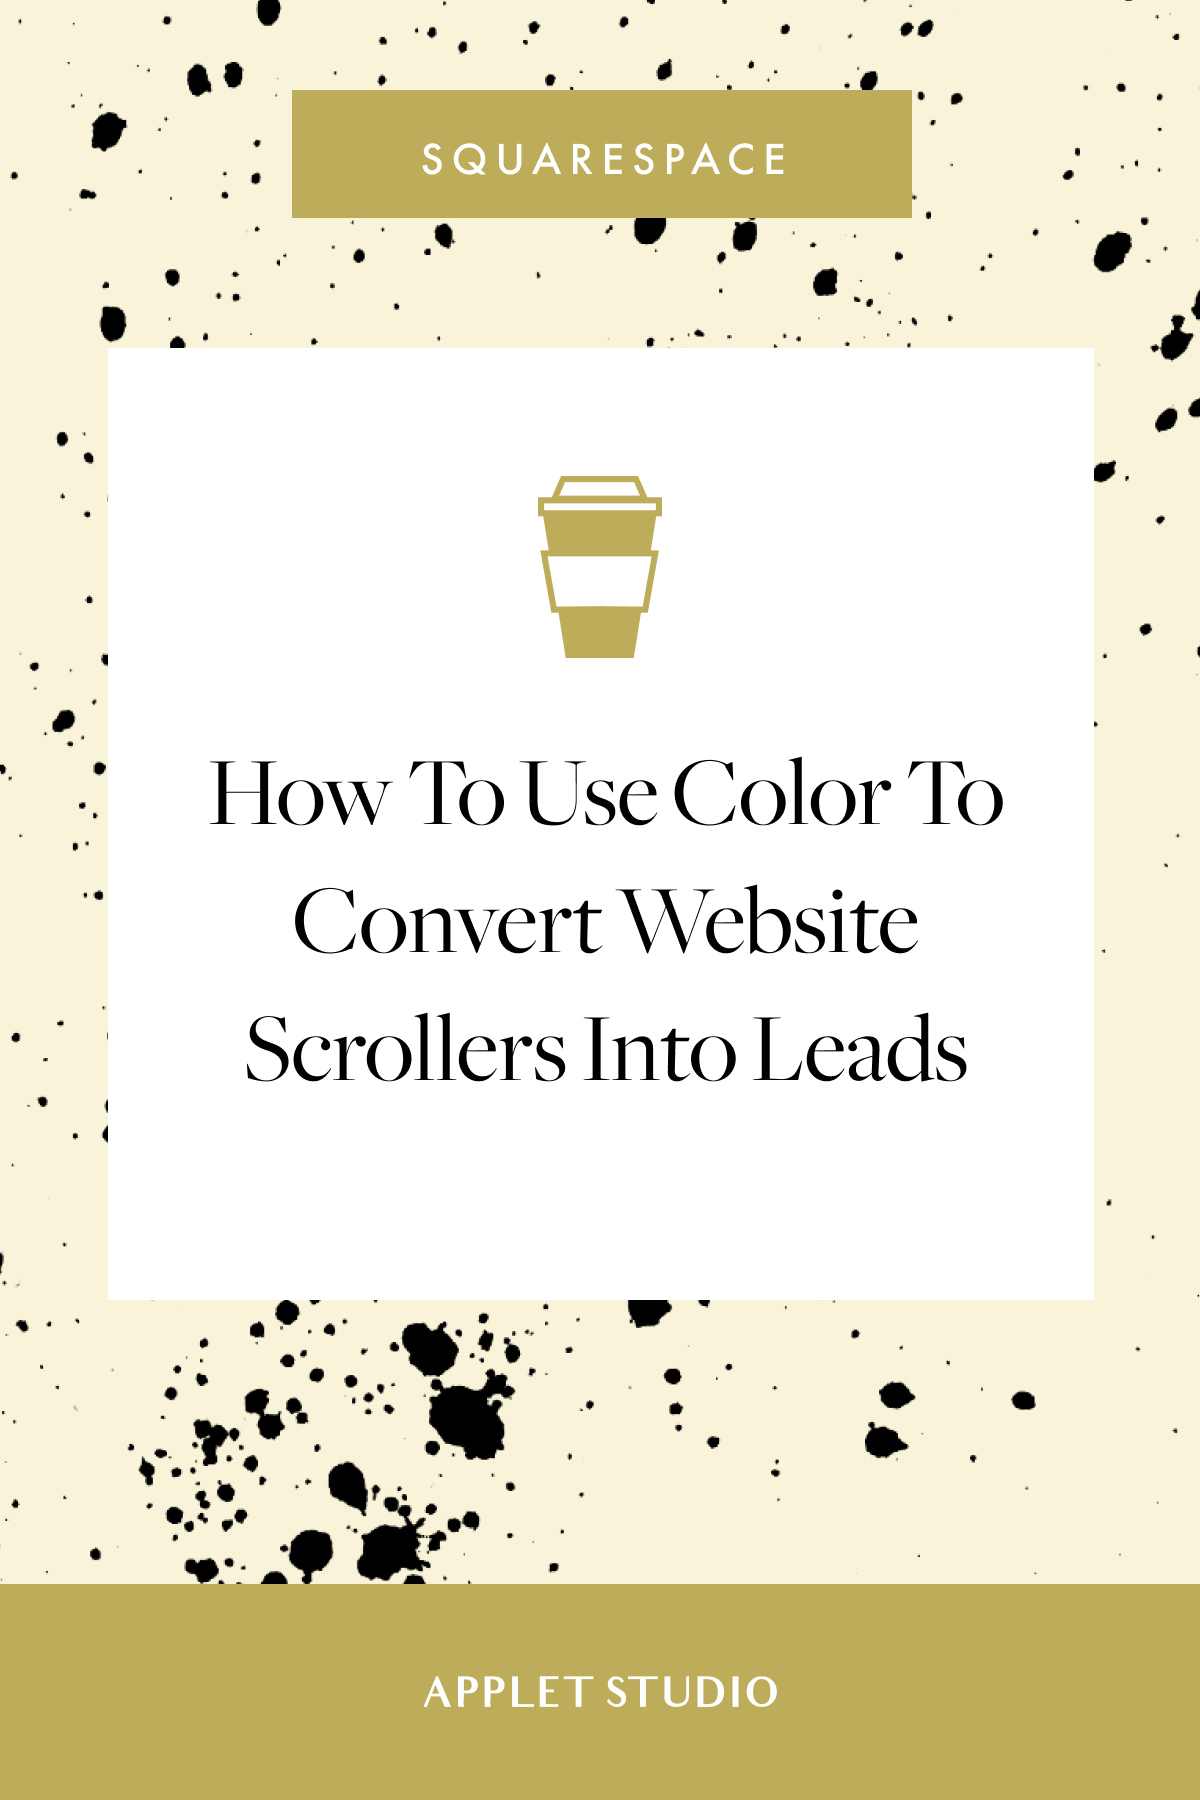 Use color to make your website convert and sell better — Applet Studio